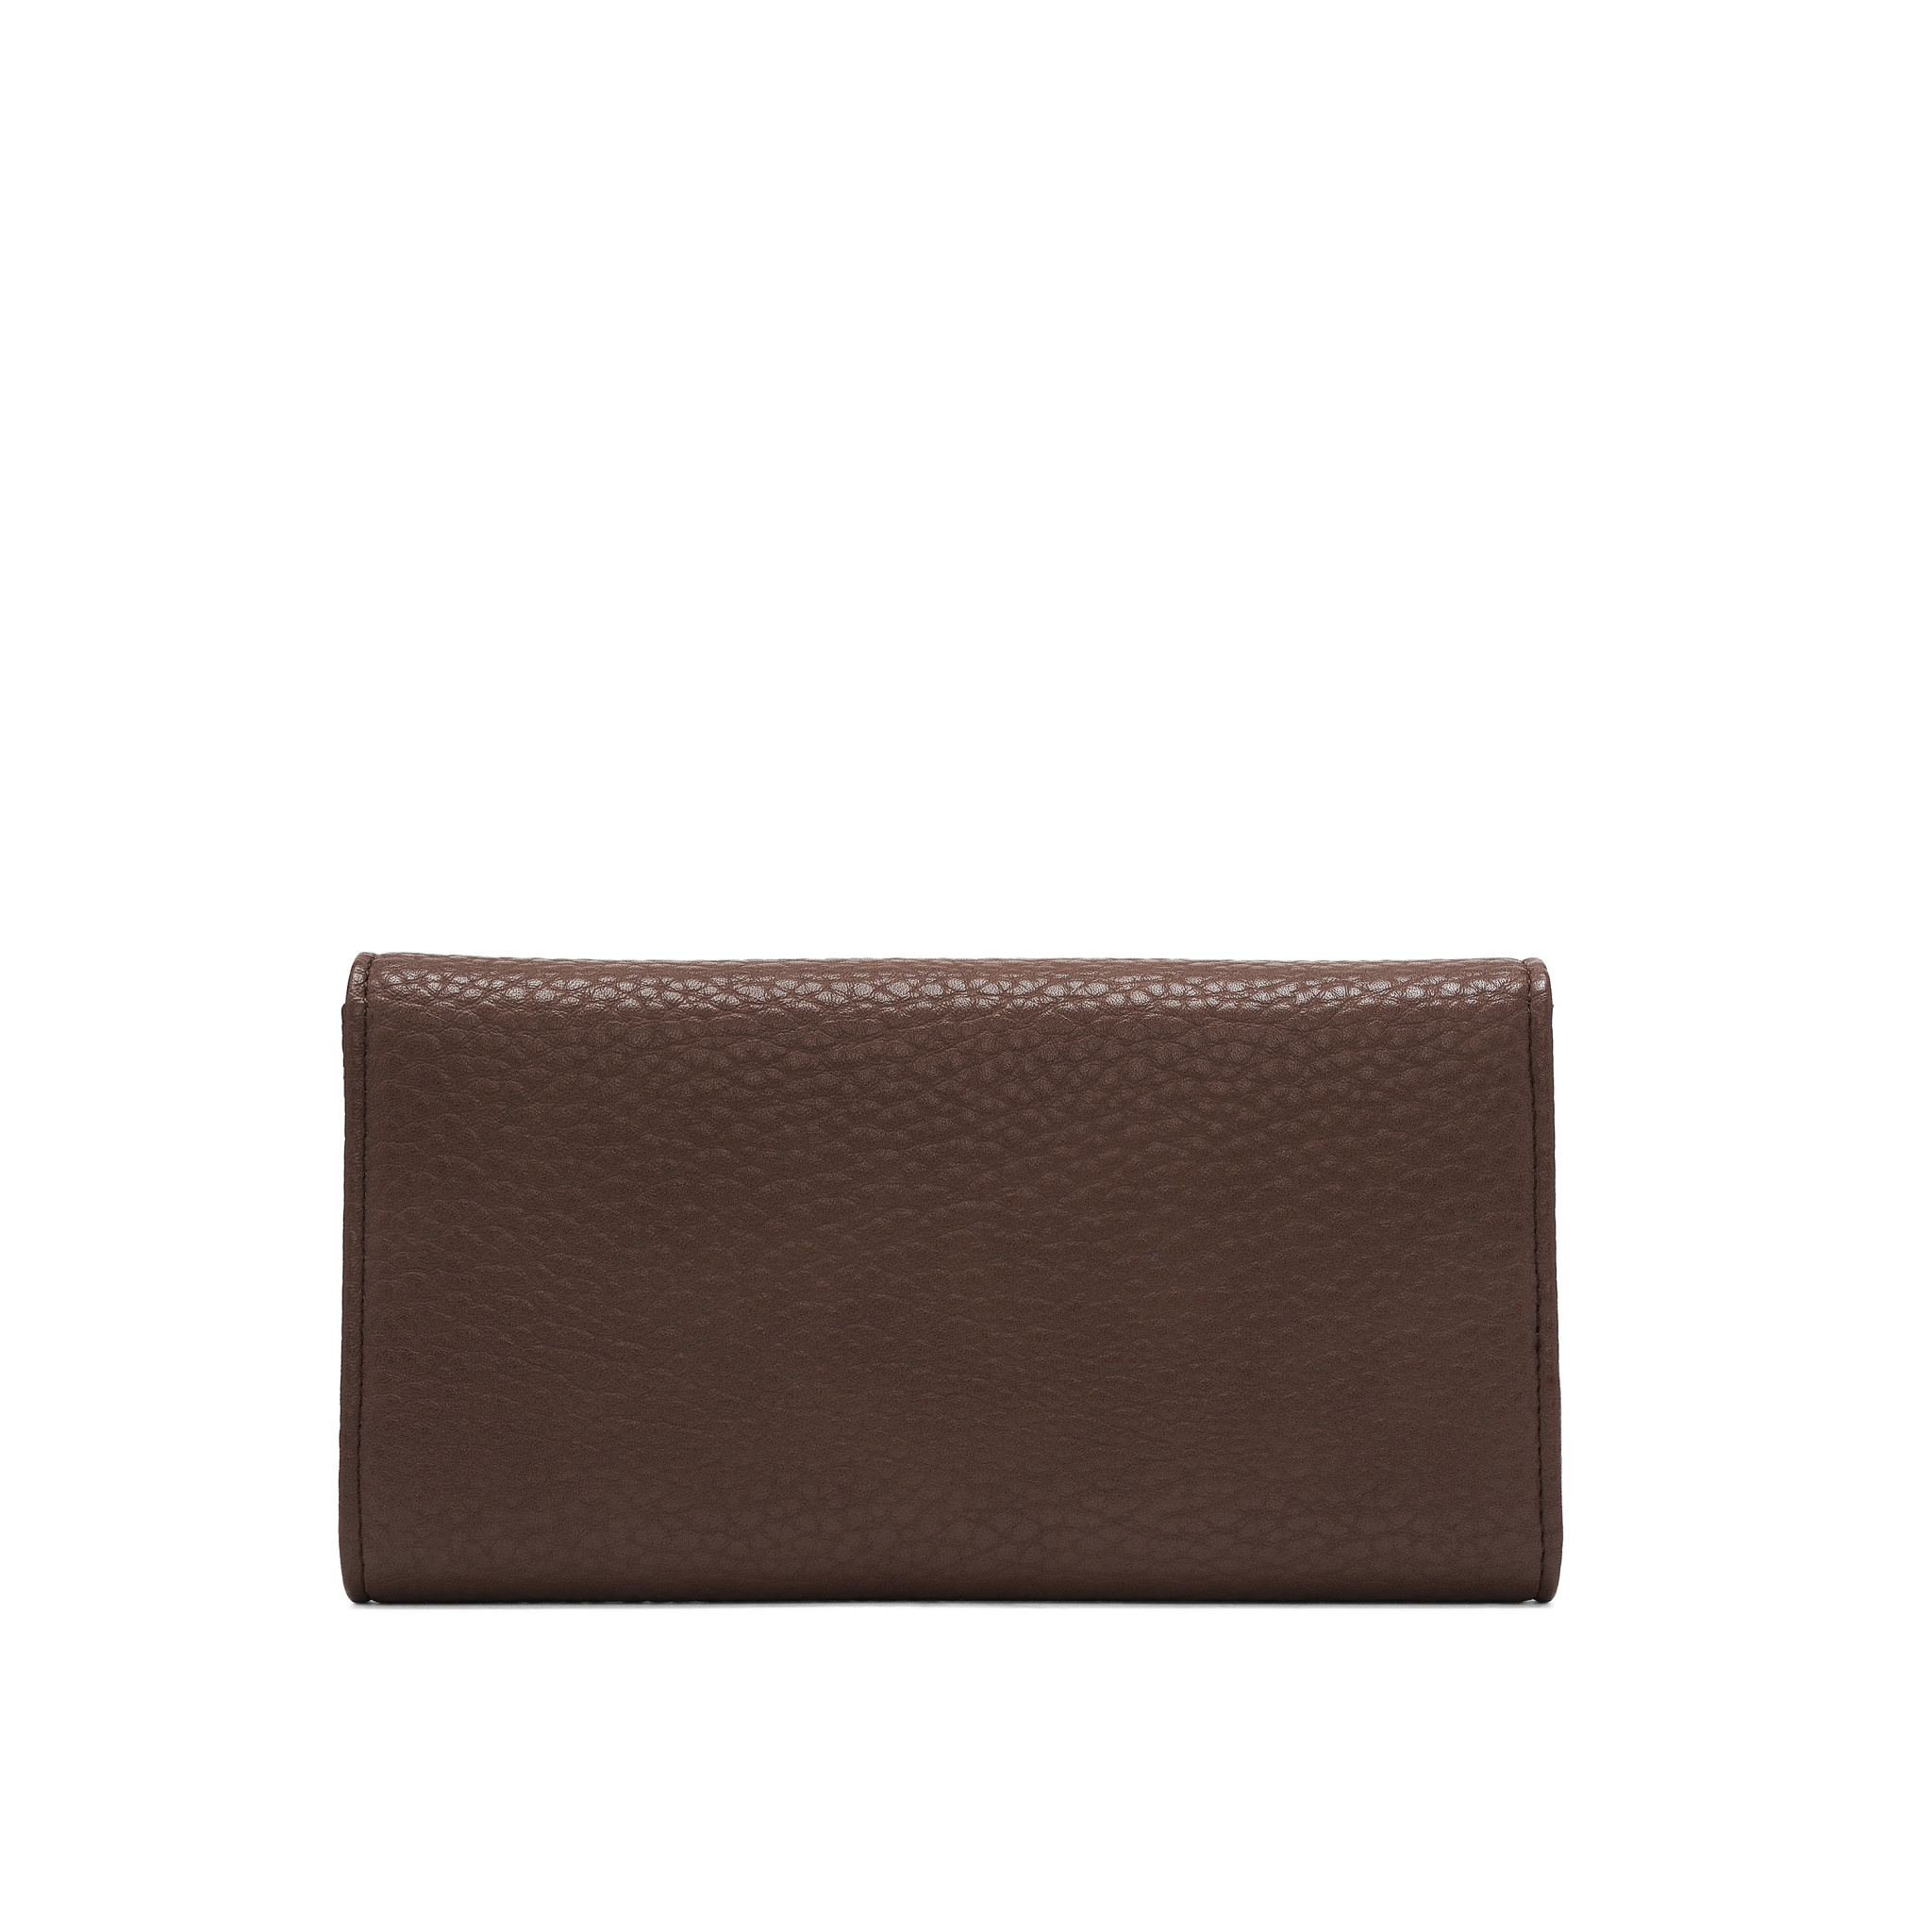 Colab Colab Pebble P.U. Tri-Fold Card Wallet (#6116) - Oak